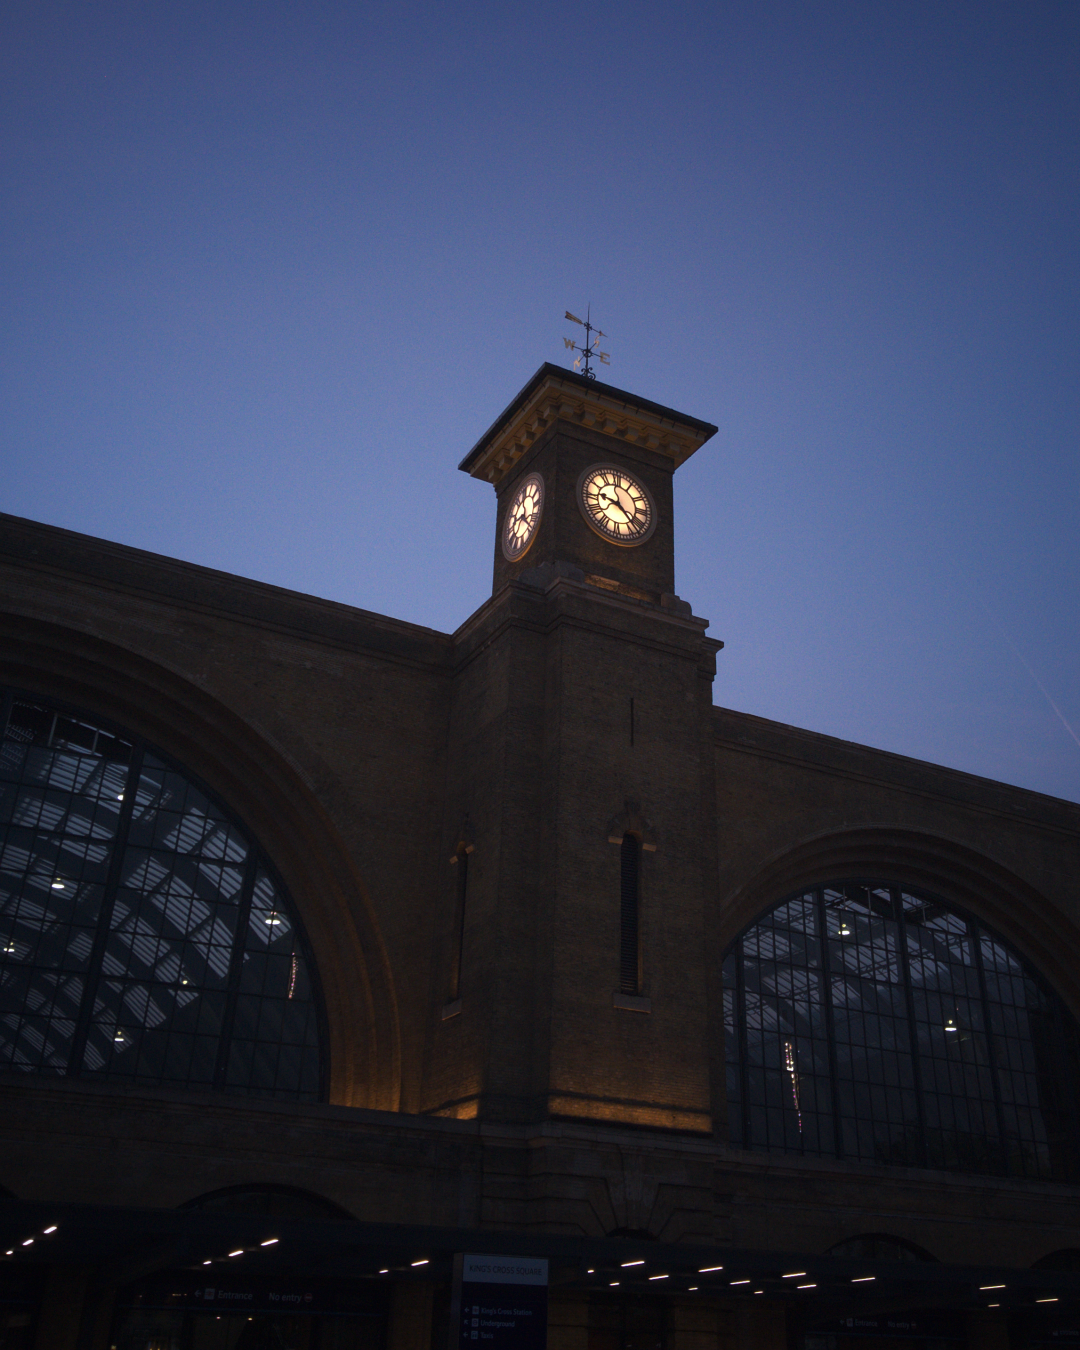 King's Cross station, London, photographed on 8 June 2016